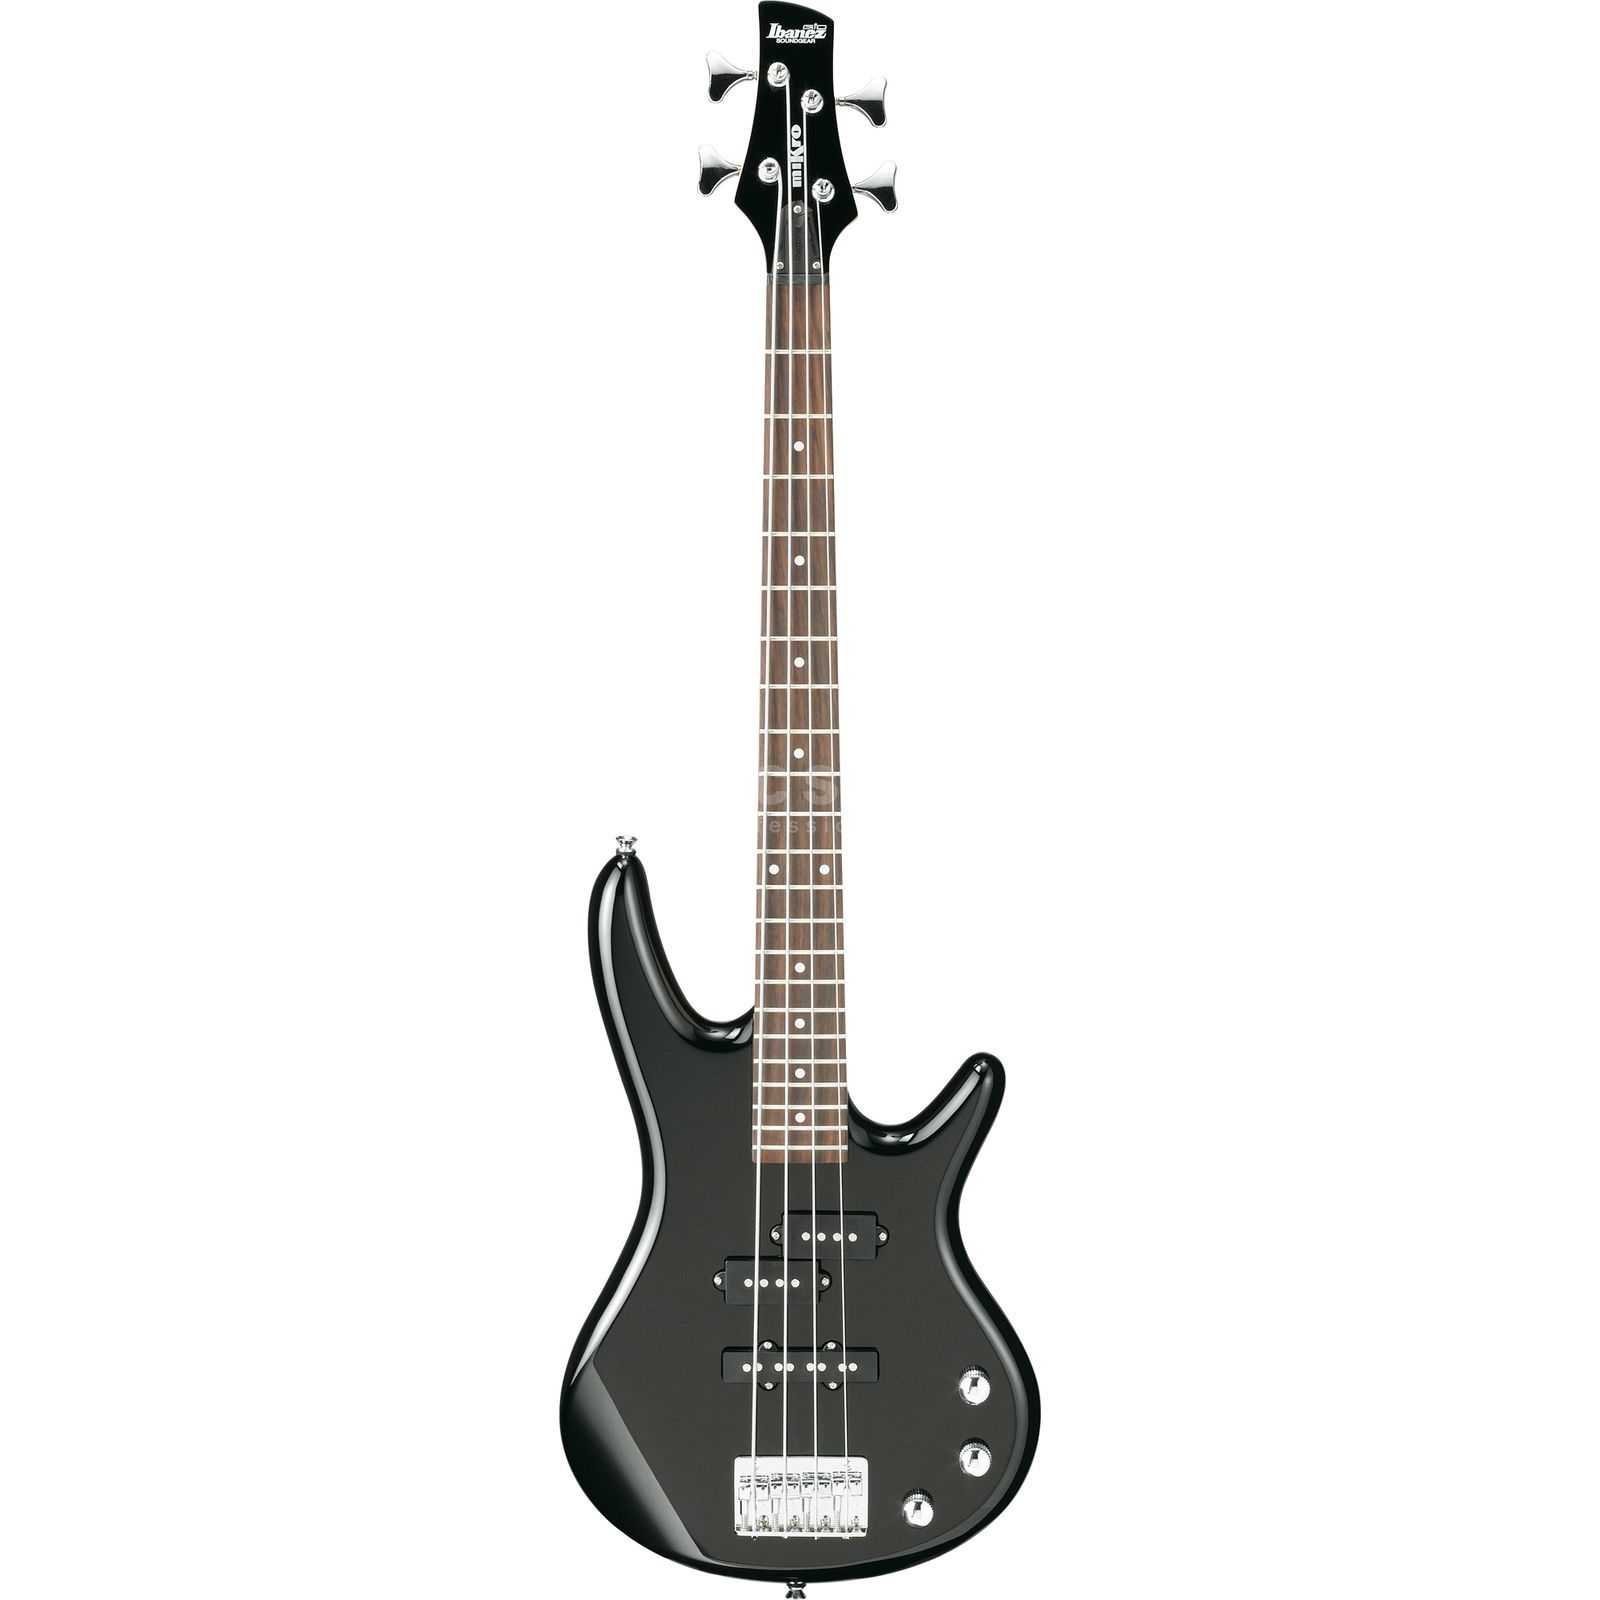 Ibanez GSRM20 Mini Bass Guitar, Black    Produktbillede